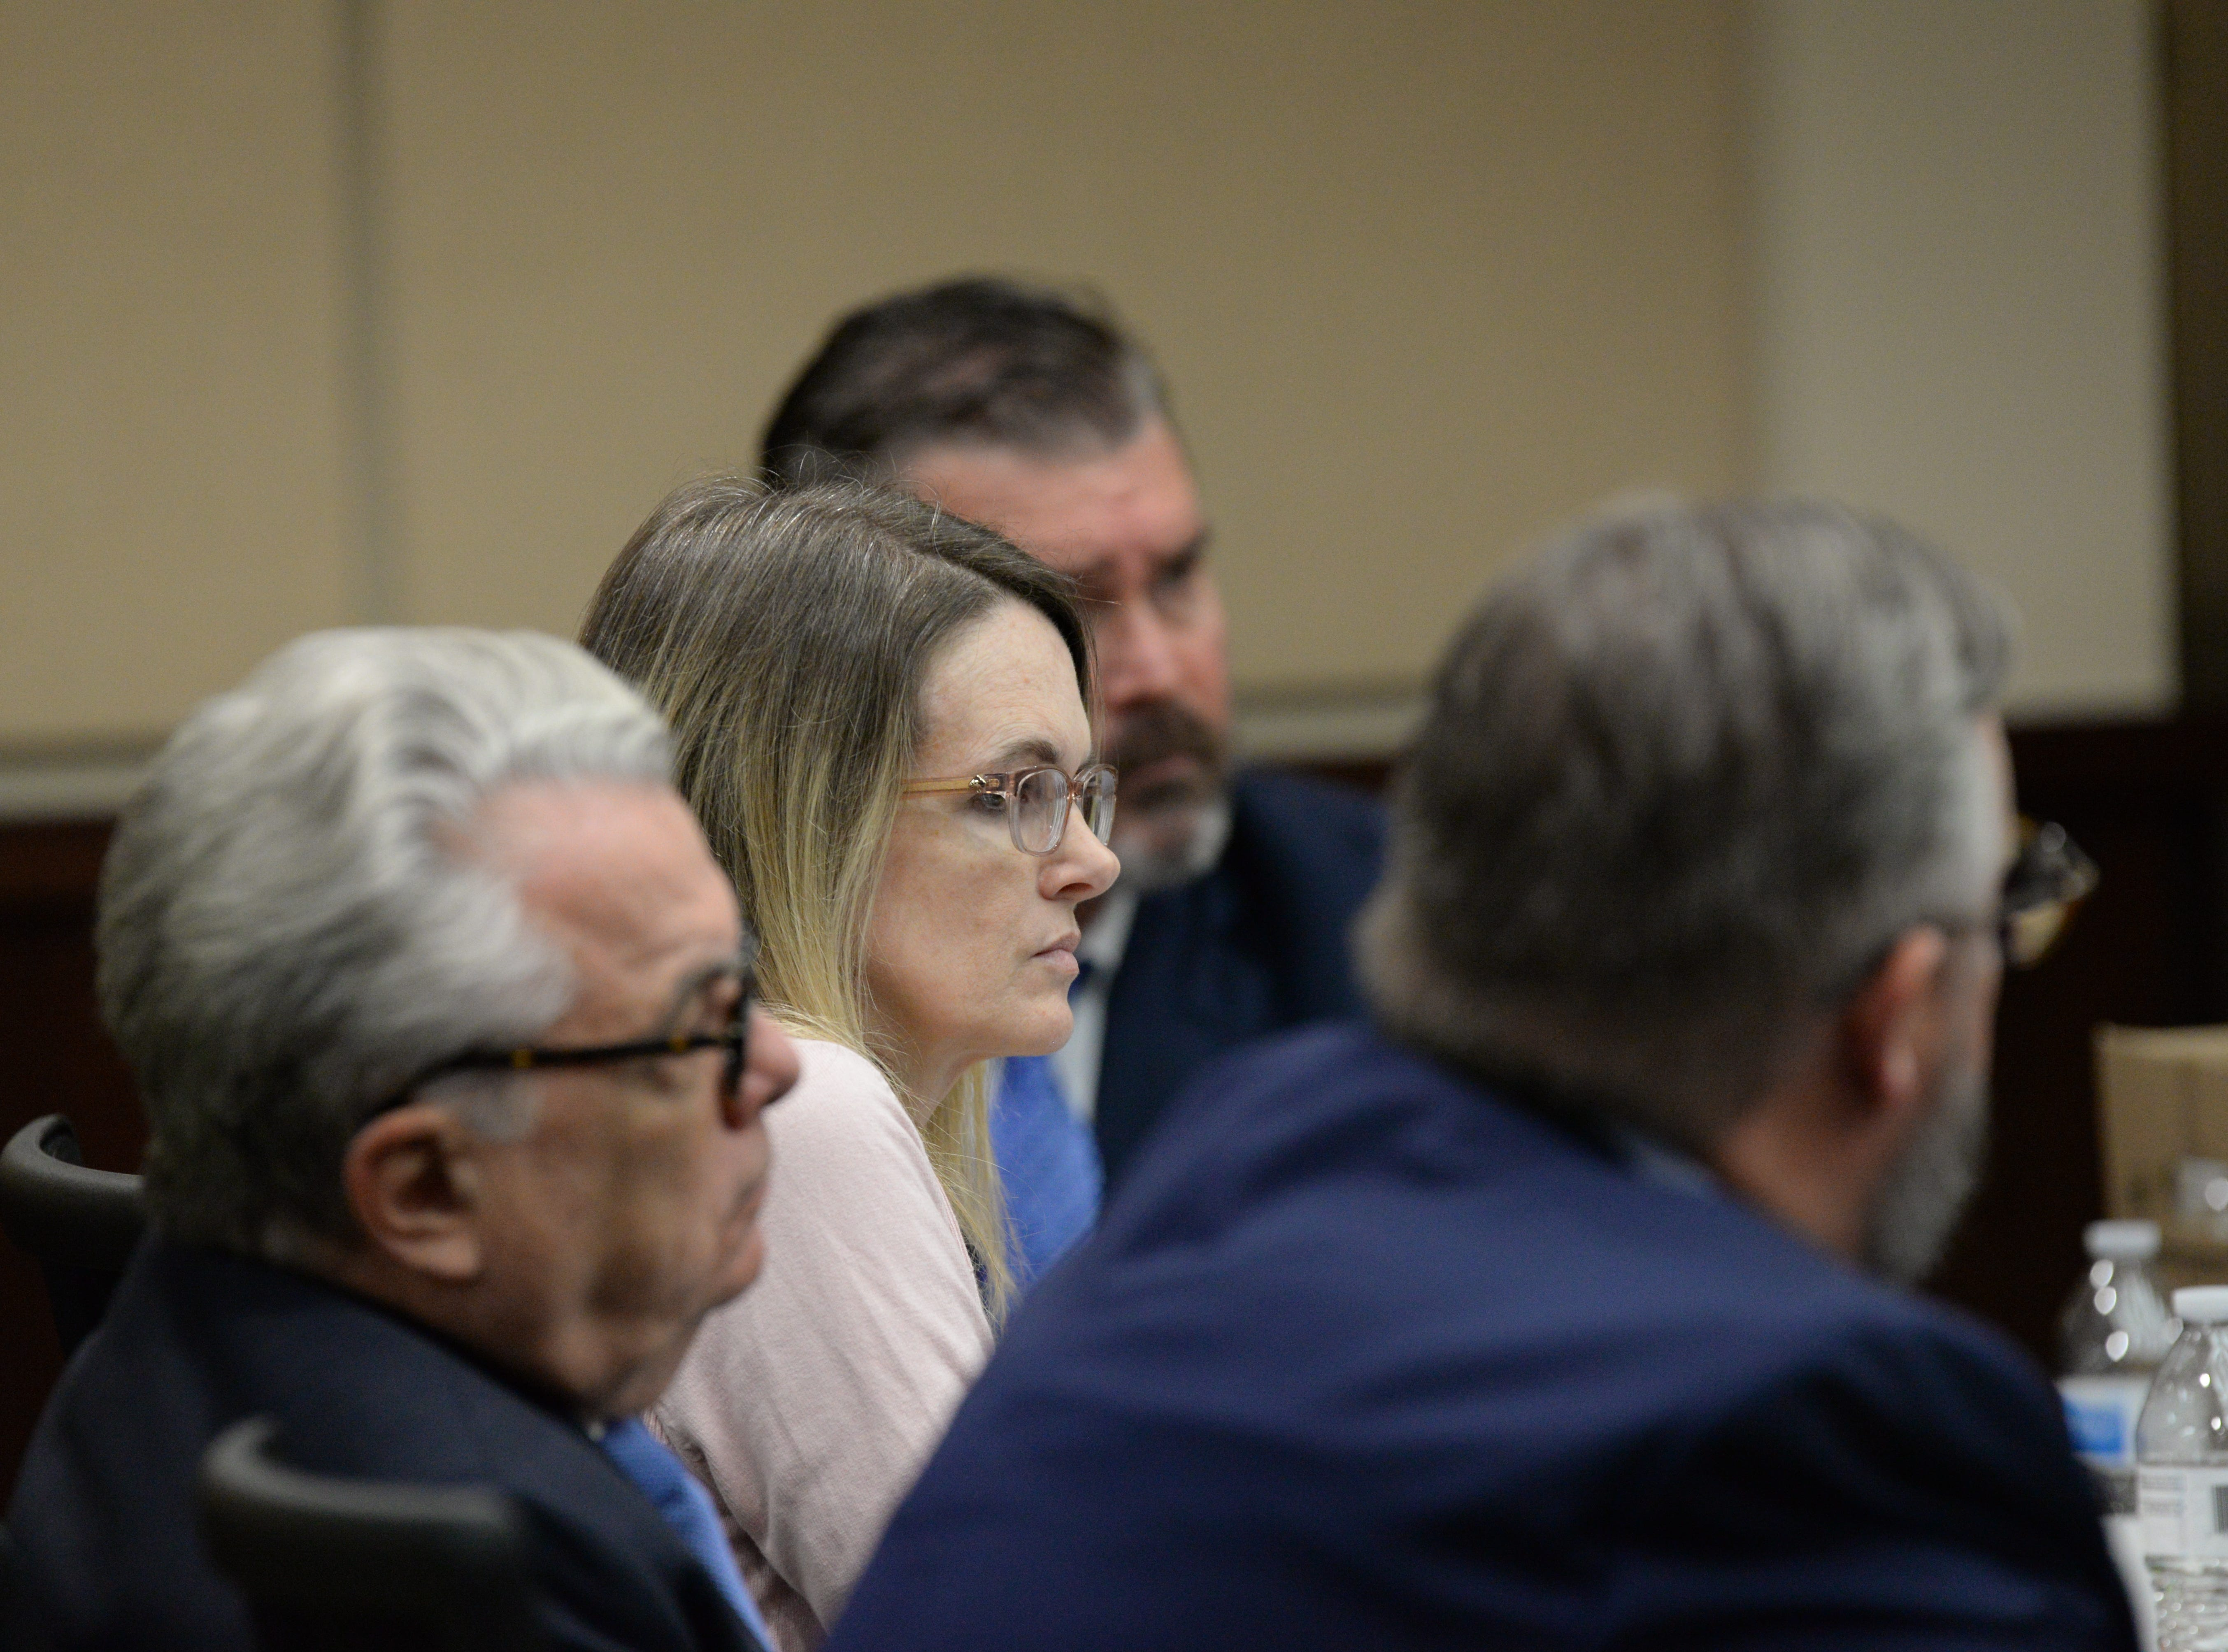 Denise Williams listens as Assistant State Attorney Jon Fuchs gives his rebuttal in closing arguments during the trial of Denise Williams for the murder of her husband Mike Williams at the Leon County Courthouse Friday, Dec. 14, 2018.